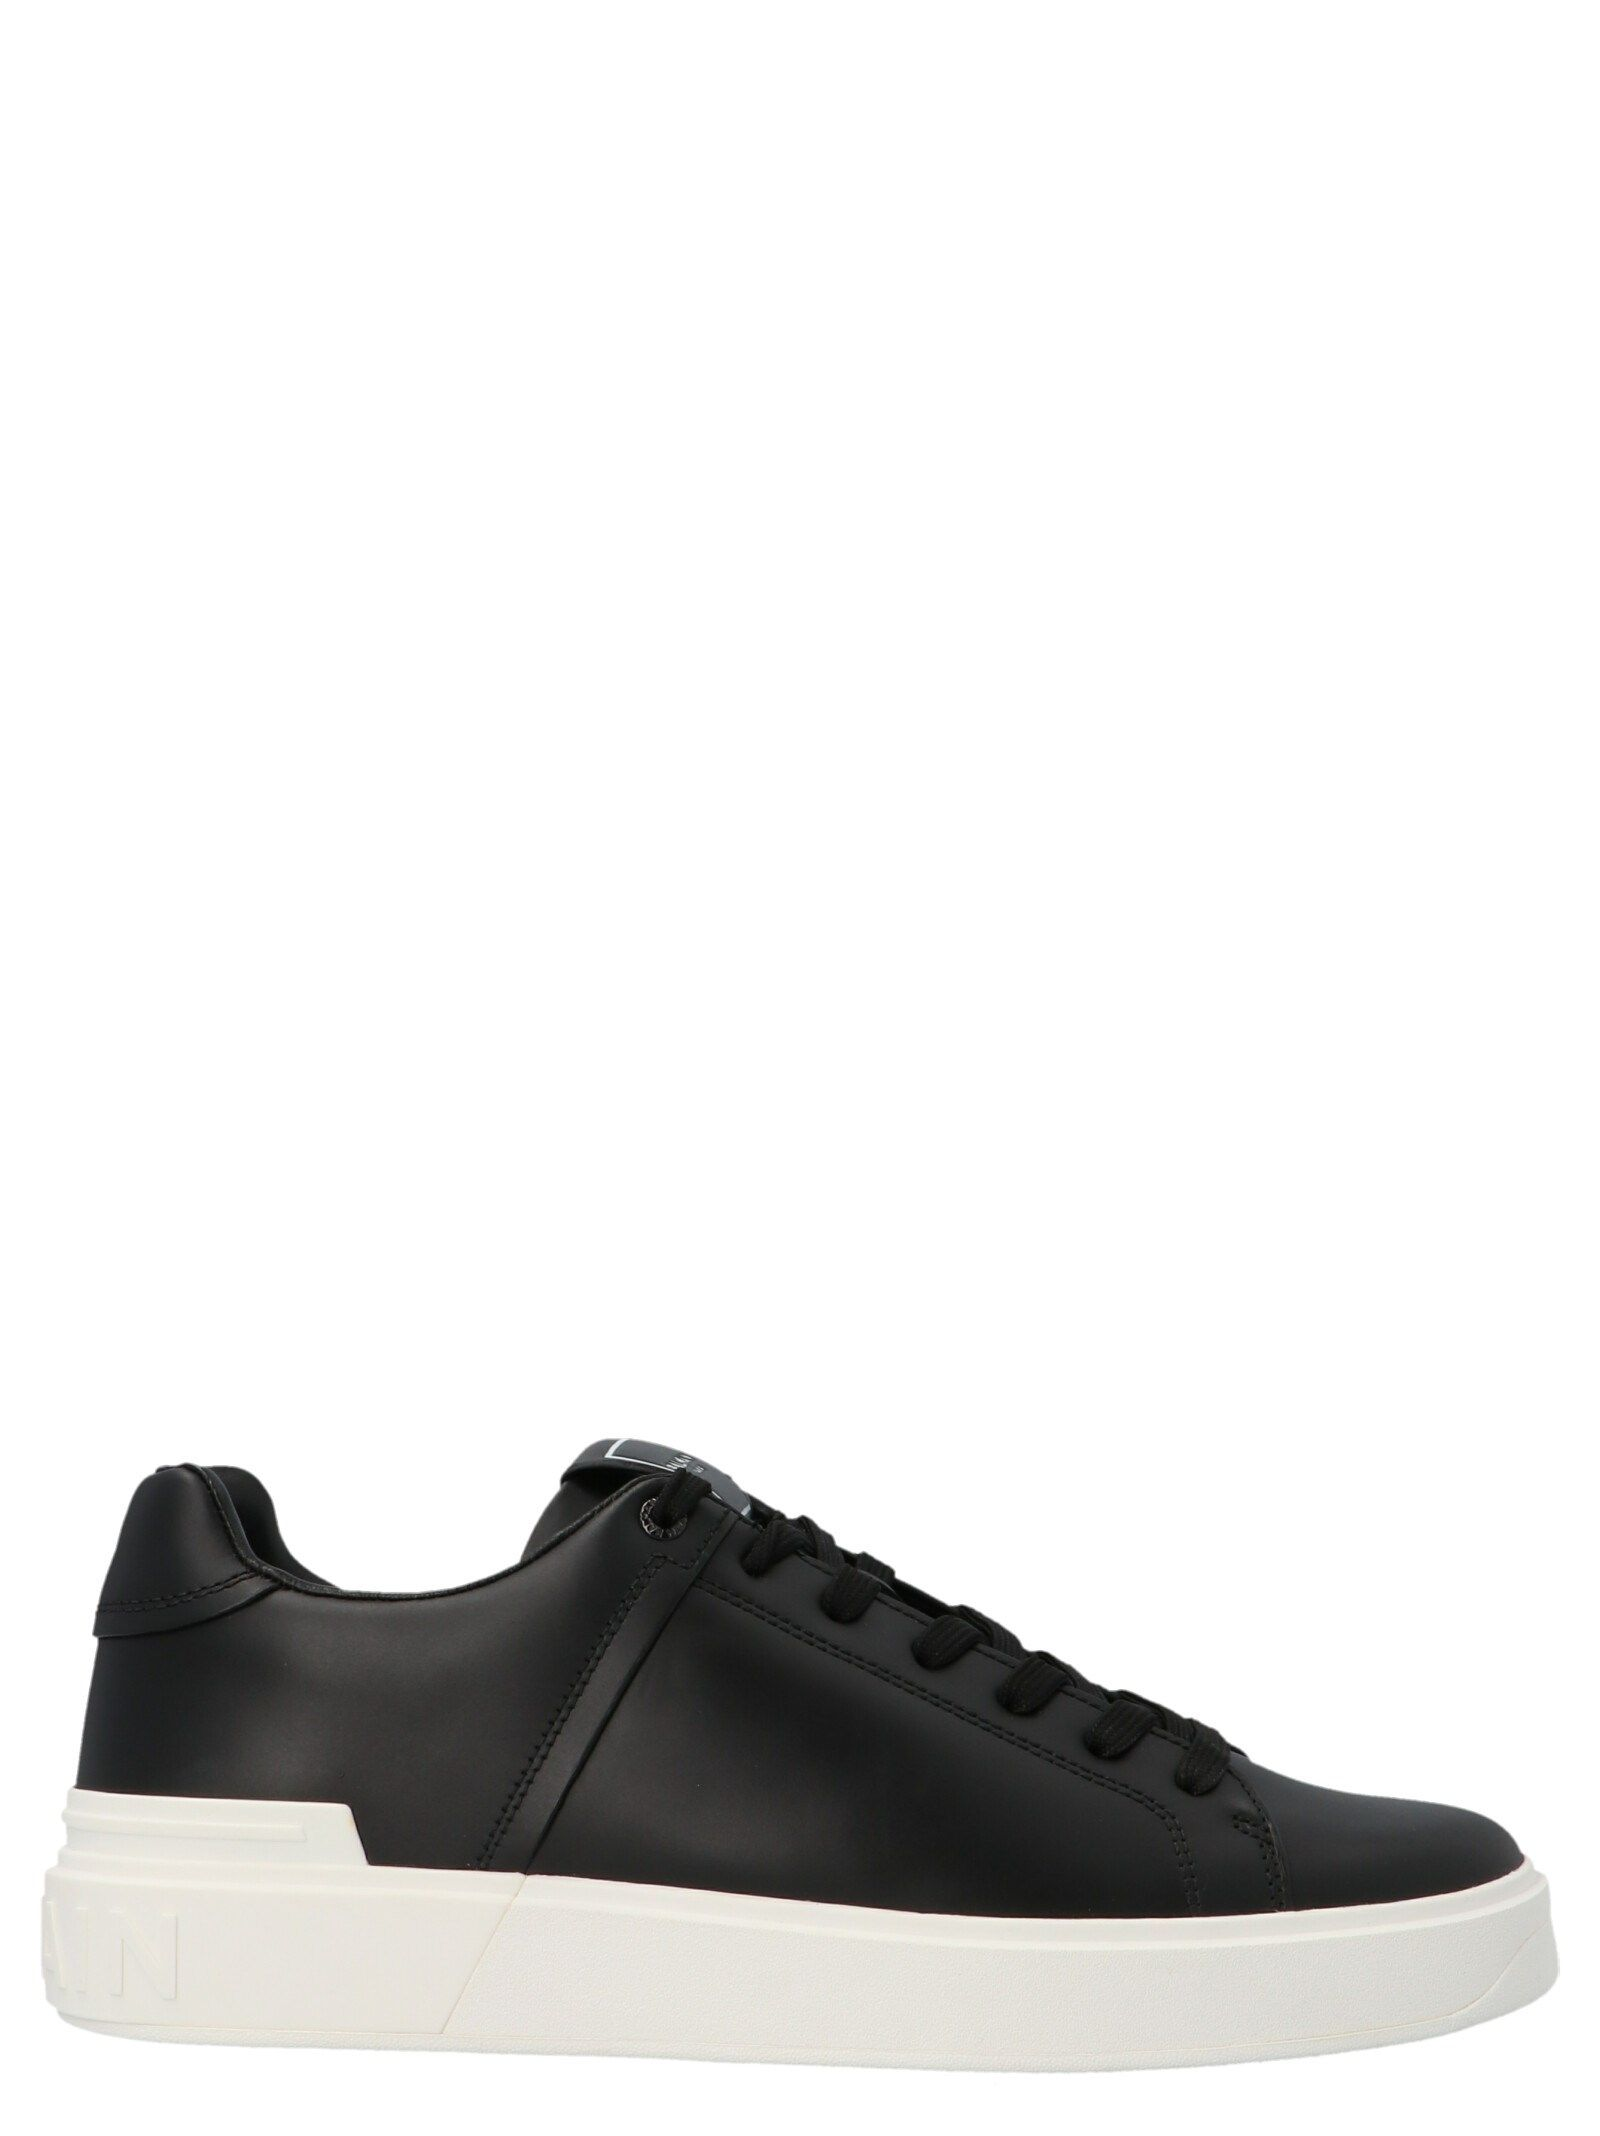 Balmain Sneakers BALMAIN MEN'S BLACK OTHER MATERIALS SNEAKERS